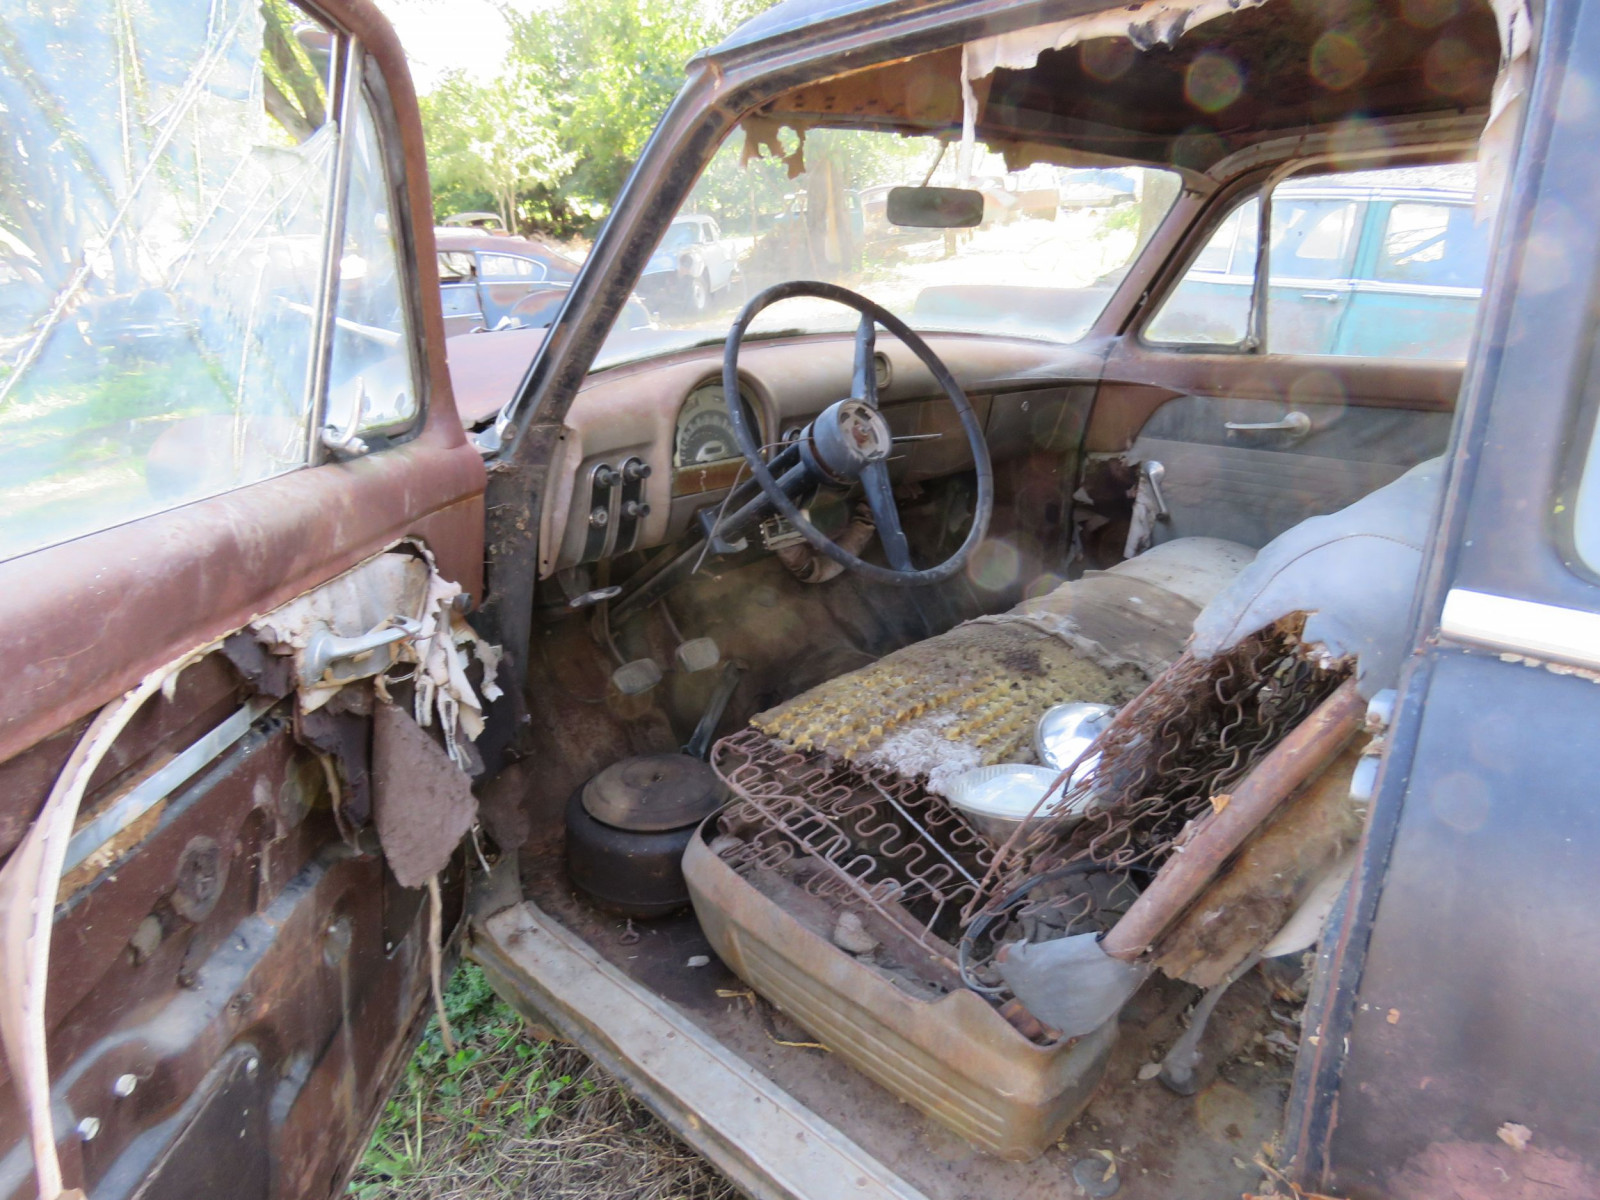 1953 Ford Mainline for Project or Parts - Image 5